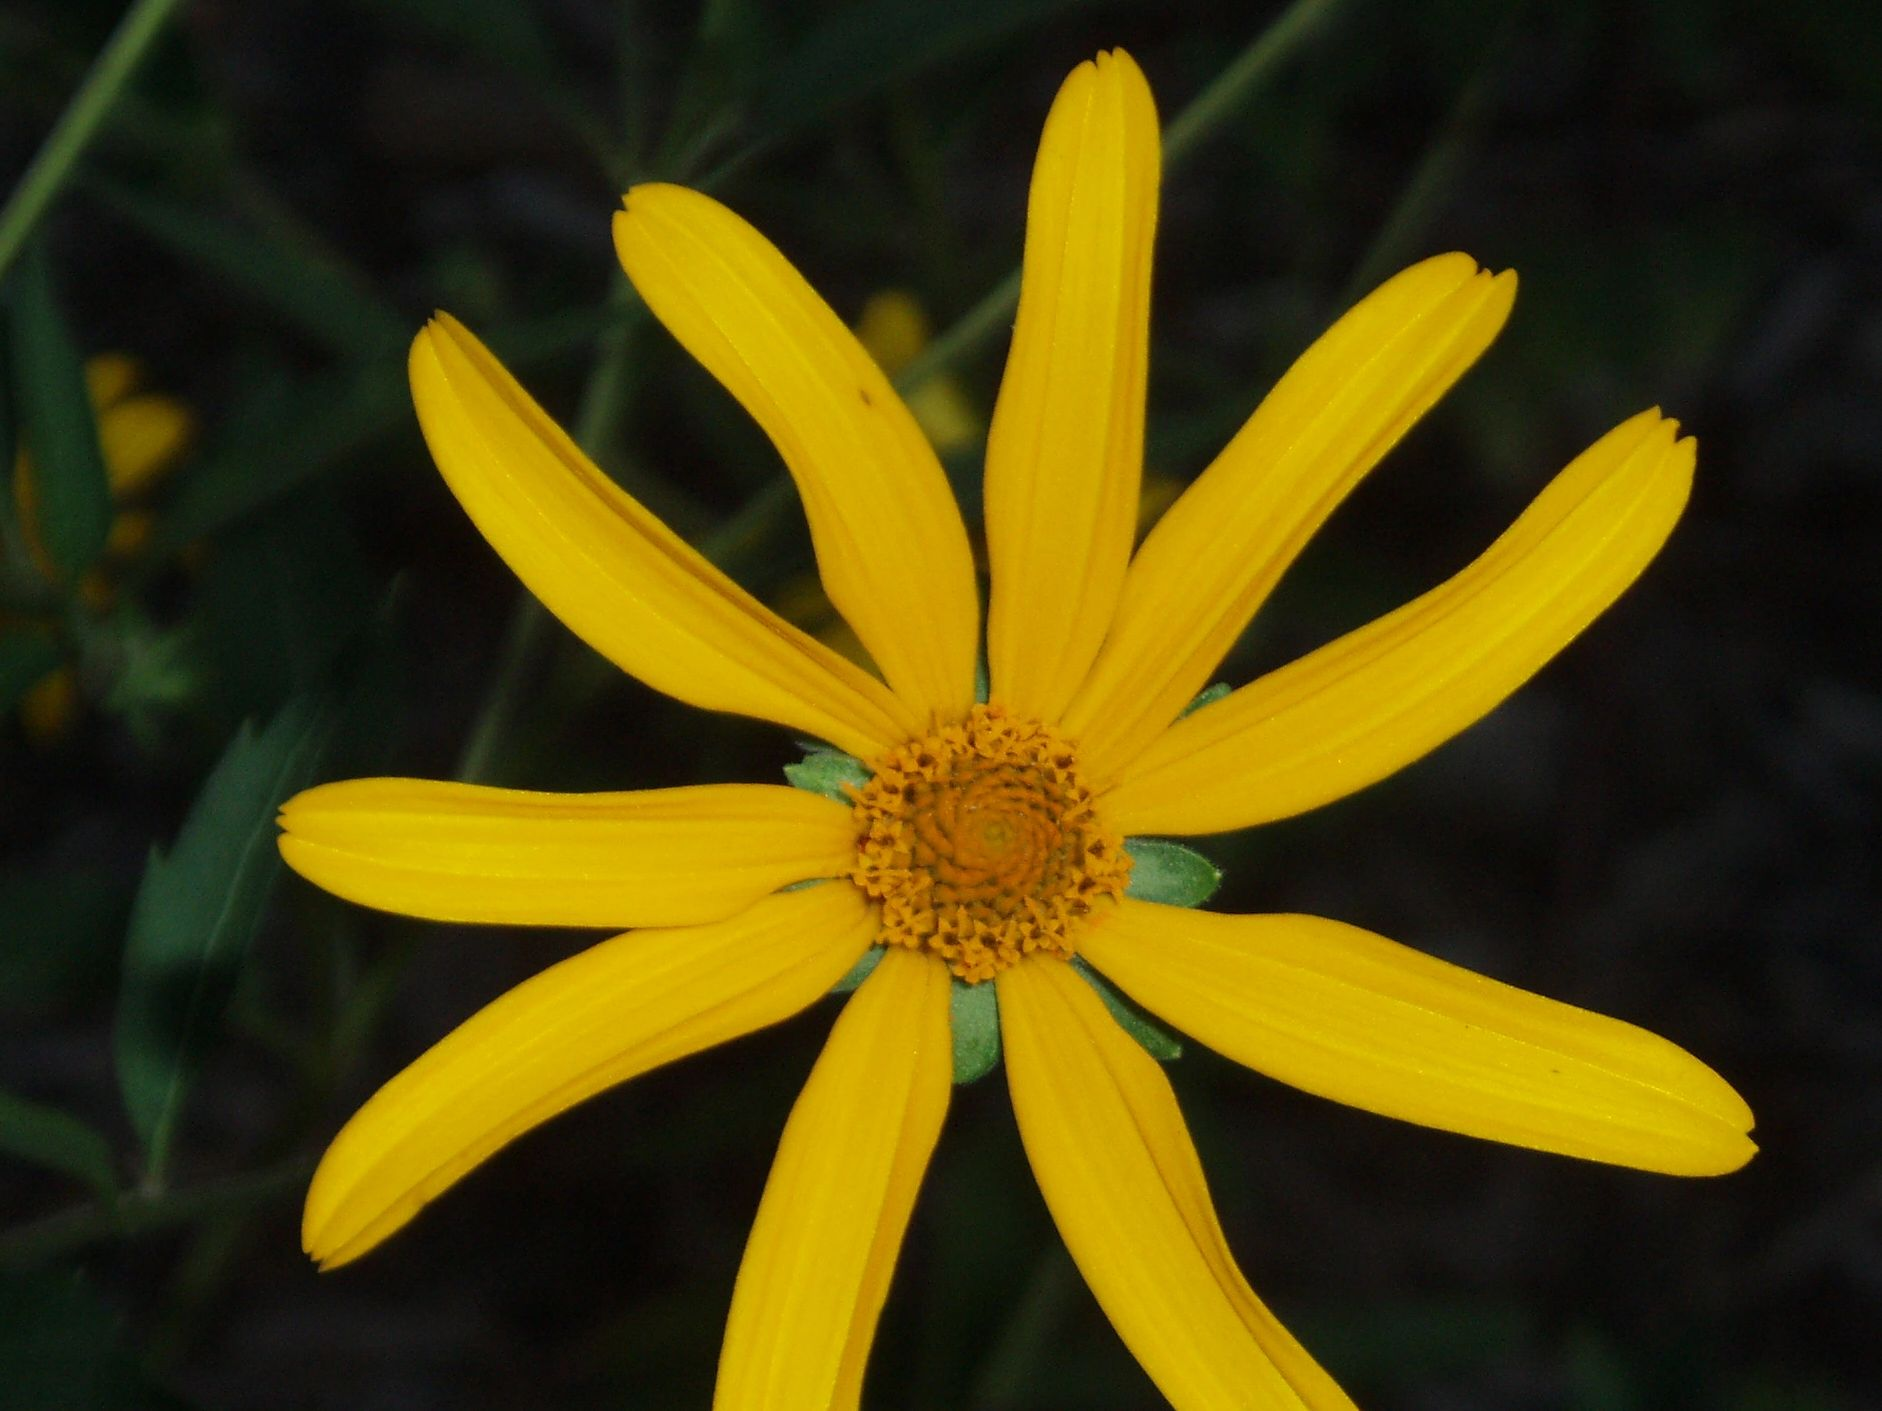 "{""blocks"":[{""key"":""6b0ci"",""text"":""Heliopsis helianthoides False Sunflower Oxeye Sunflower - potted plants email john@easywildflowers.com"",""type"":""unstyled"",""depth"":0,""inlineStyleRanges"":[],""entityRanges"":[],""data"":{}}],""entityMap"":{}}"